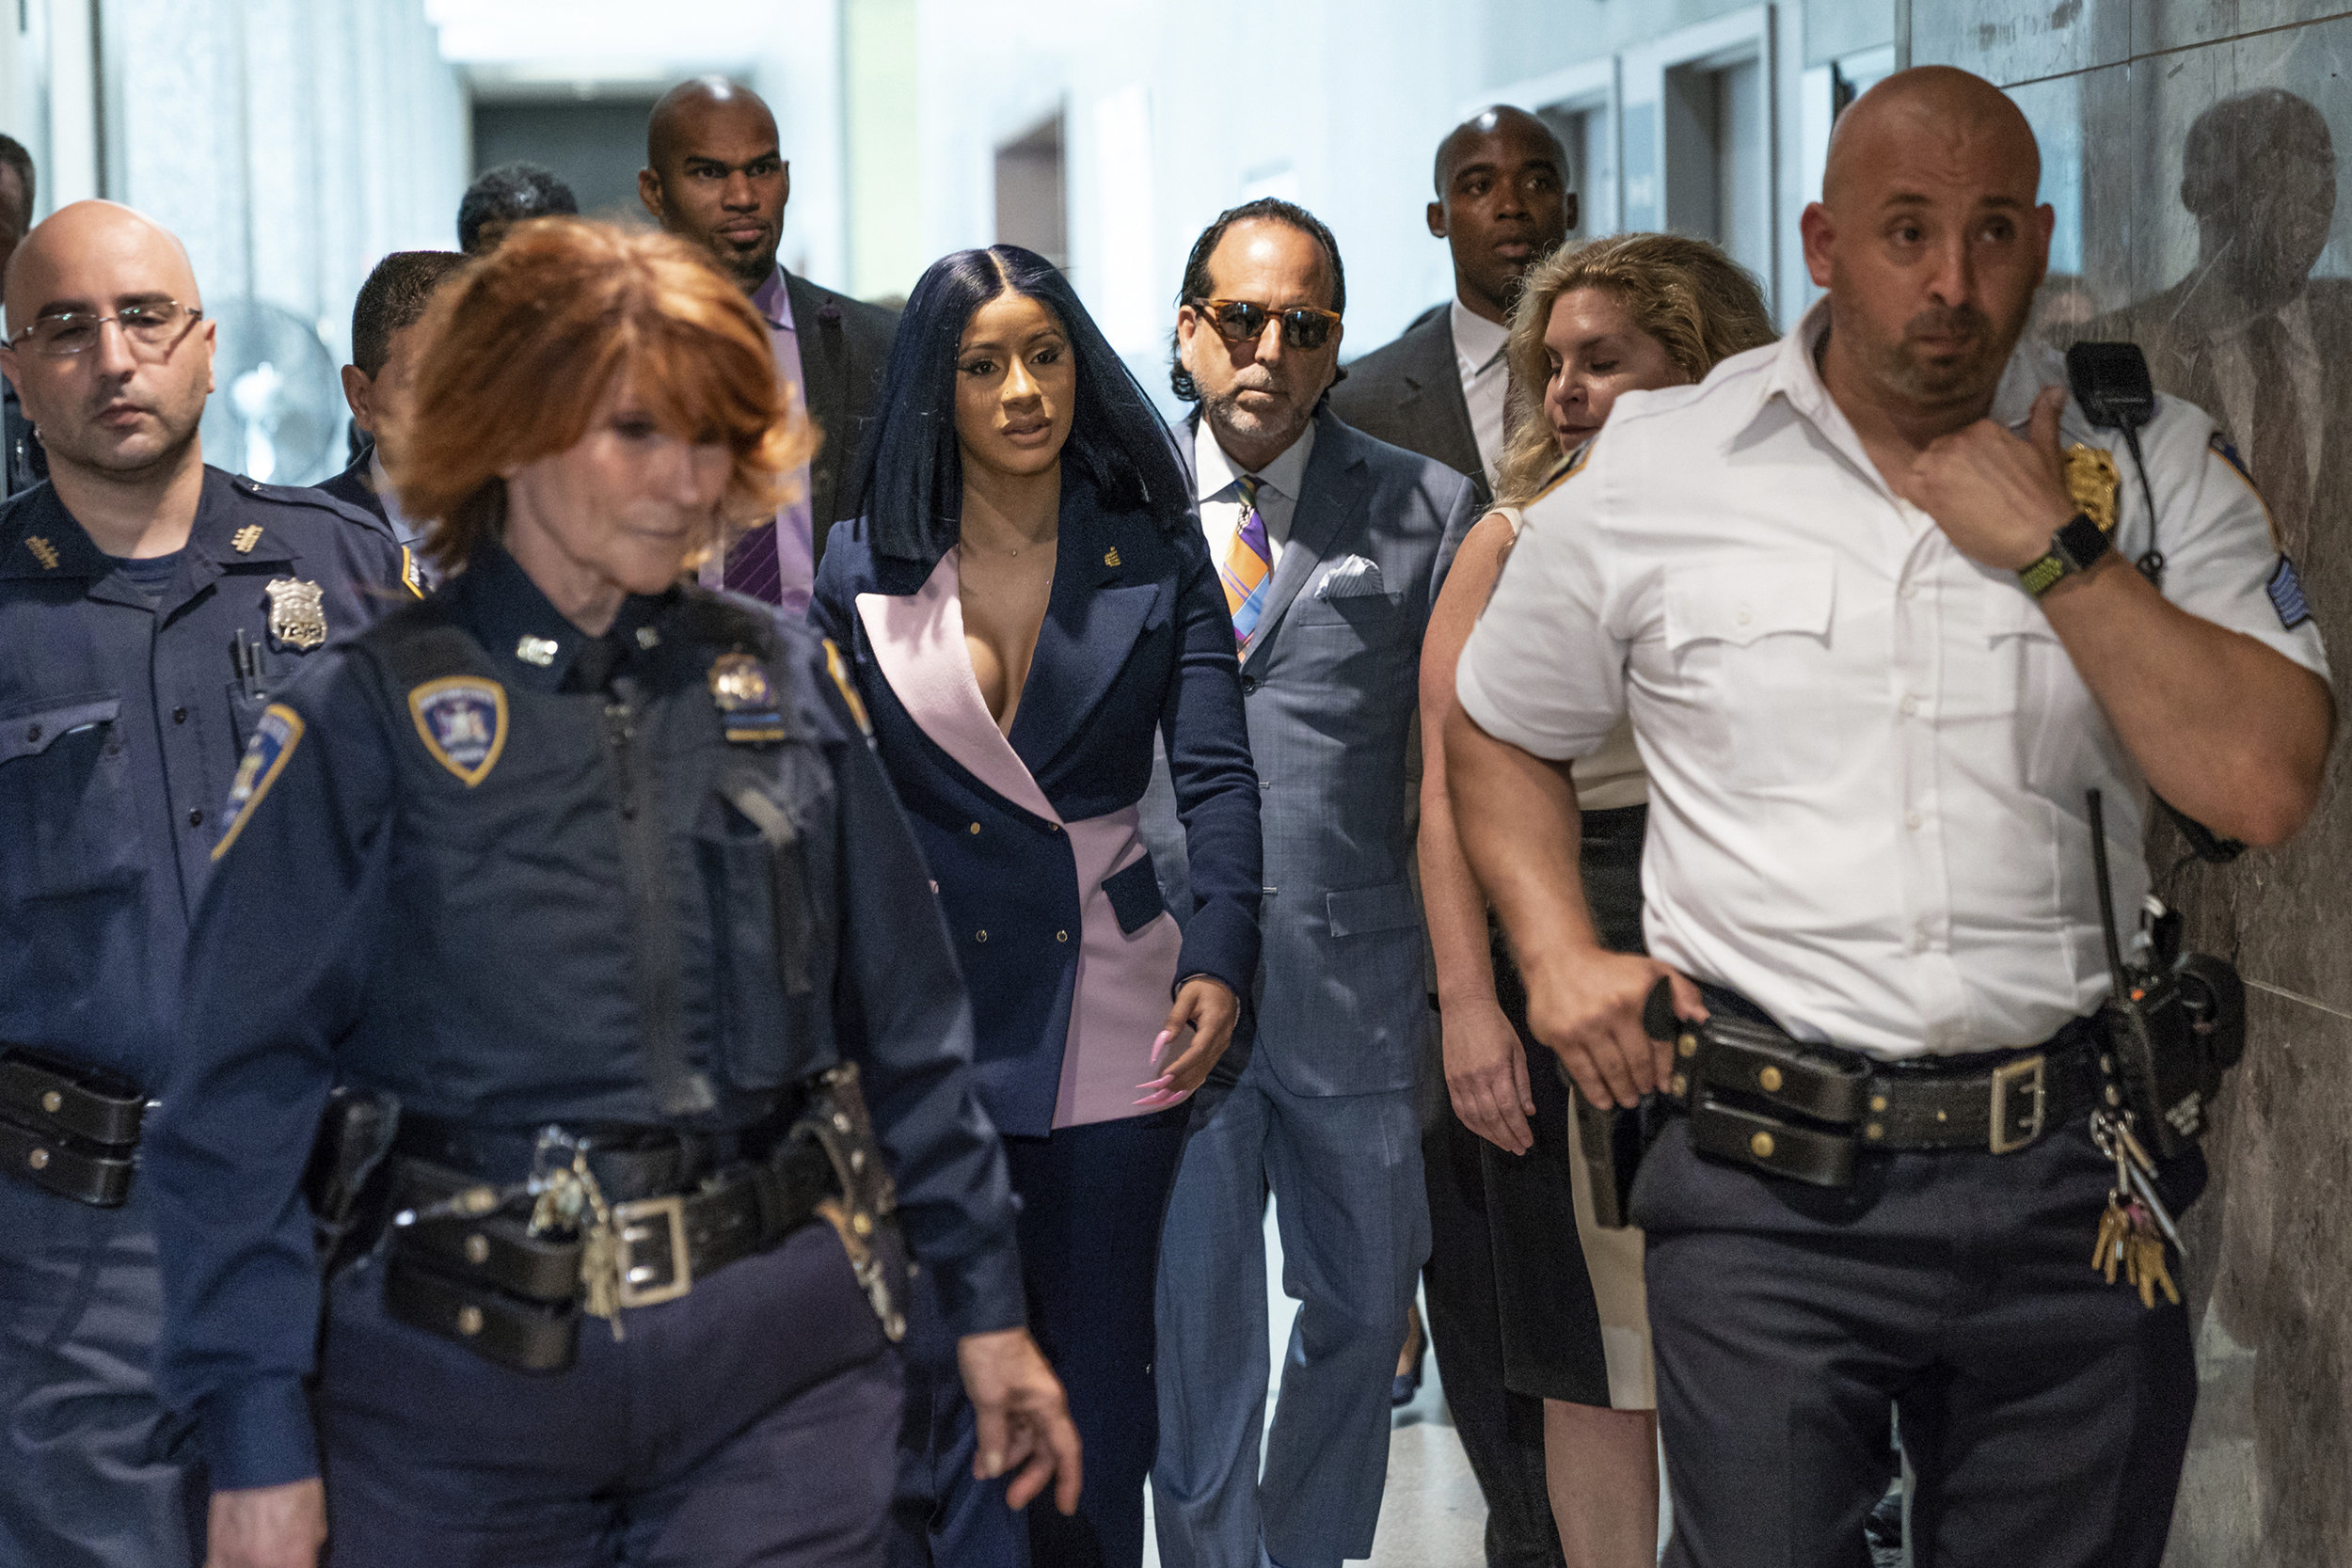 Grammy-winning rapper Cardi B arrives for a hearing at Queens County Criminal Court, Tuesday. She was arraigned on new felony charges in connection with a fight last year at a Flushing strip club. Photo by Uli Seit/ The New York Times  via AP, Pool.